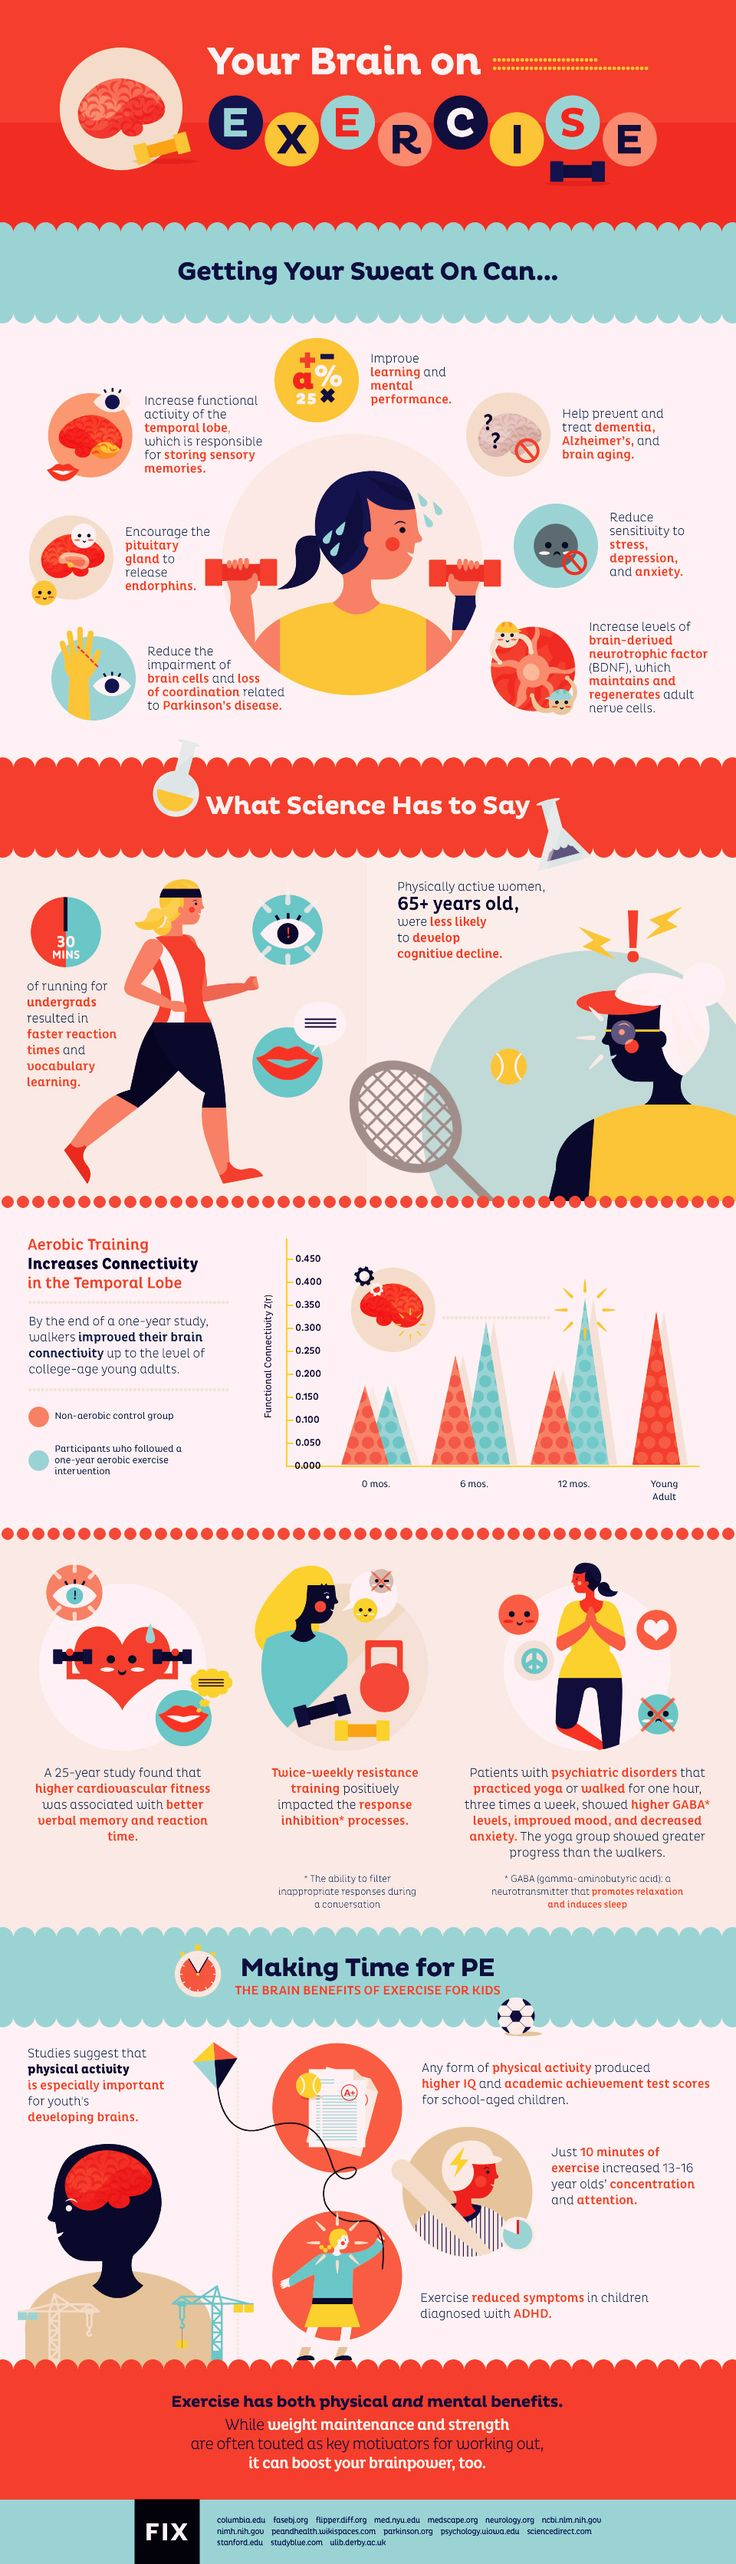 I bet you will get up and move that body when you read how getting your sweat on can improve your life! #infographic